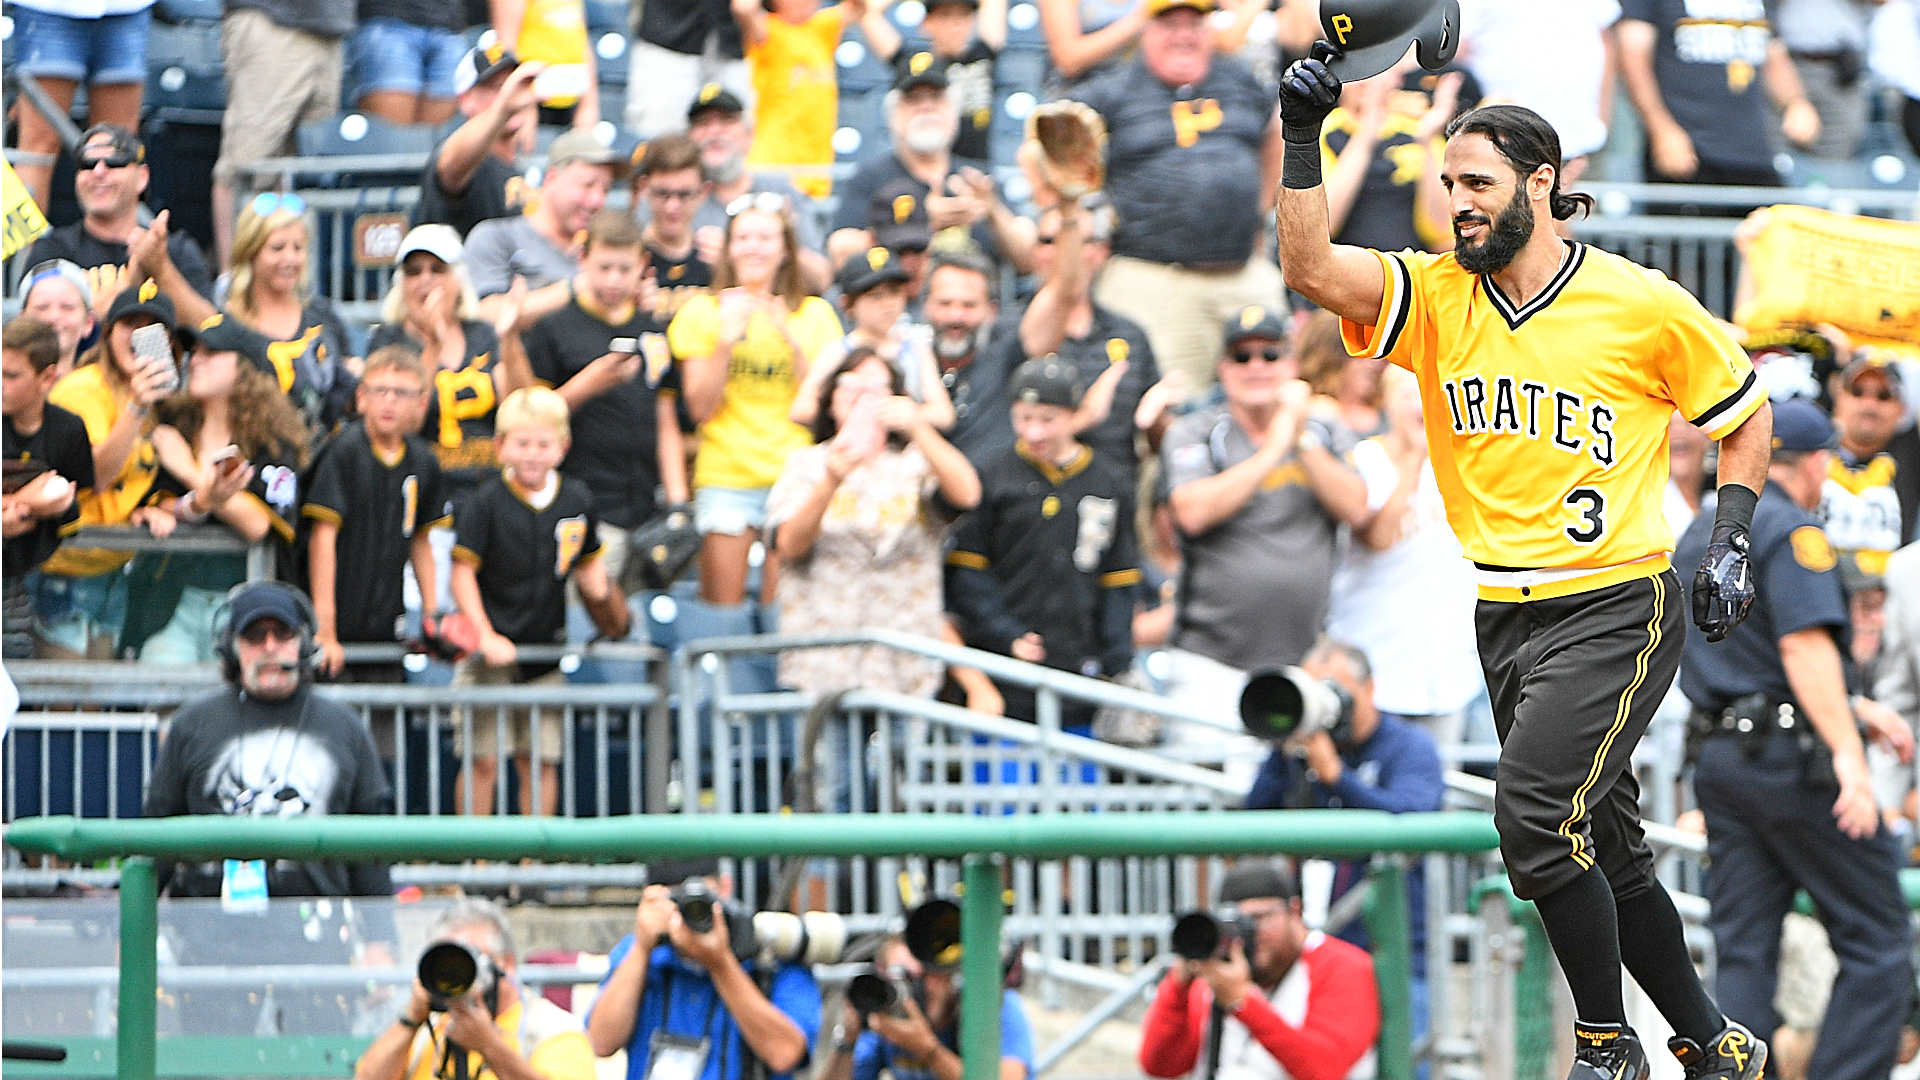 Major League Baseball trade rumors: Braves trade Sean Rodriguez to Pirates